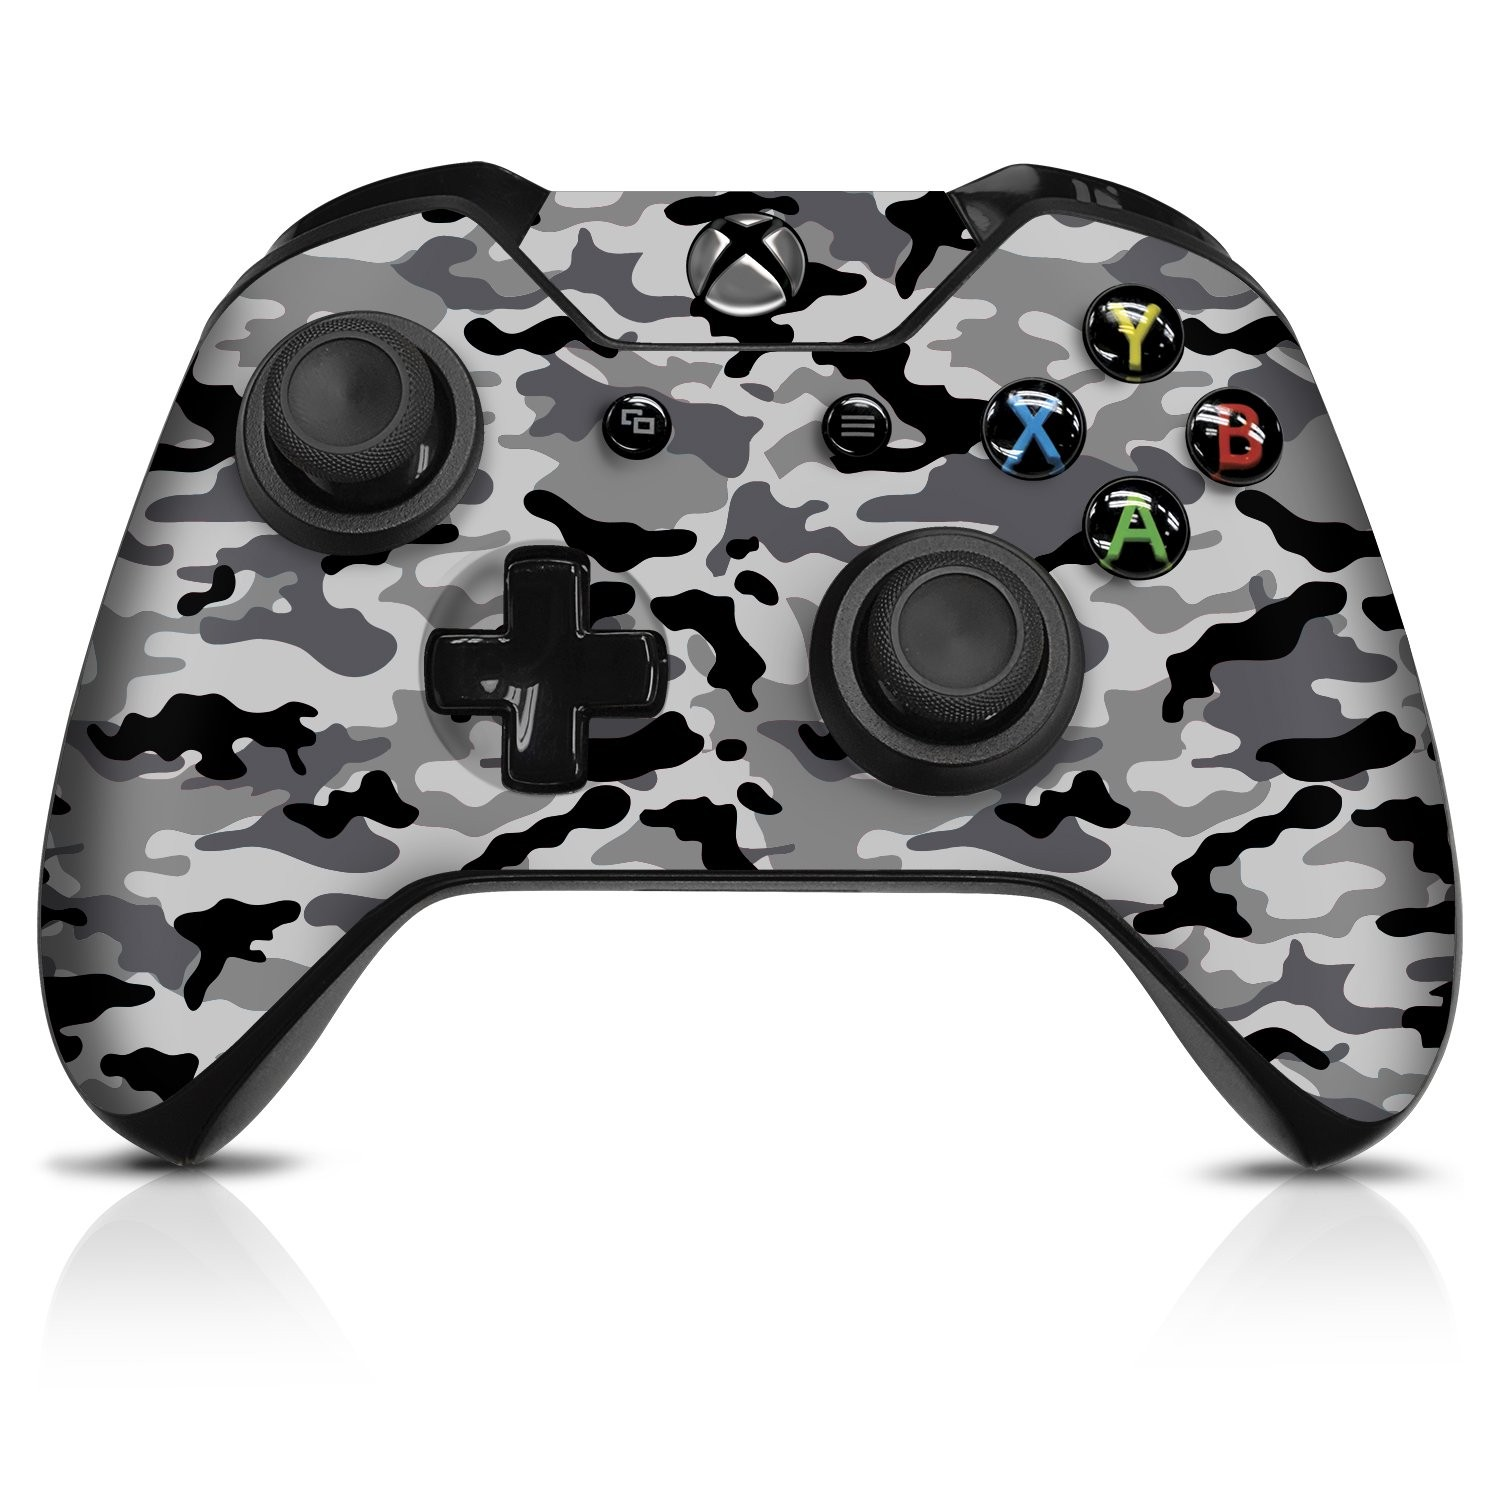 Urban Camo  Xbox One Controller Skin - Officially Licensed by Xbox - Controller Gear